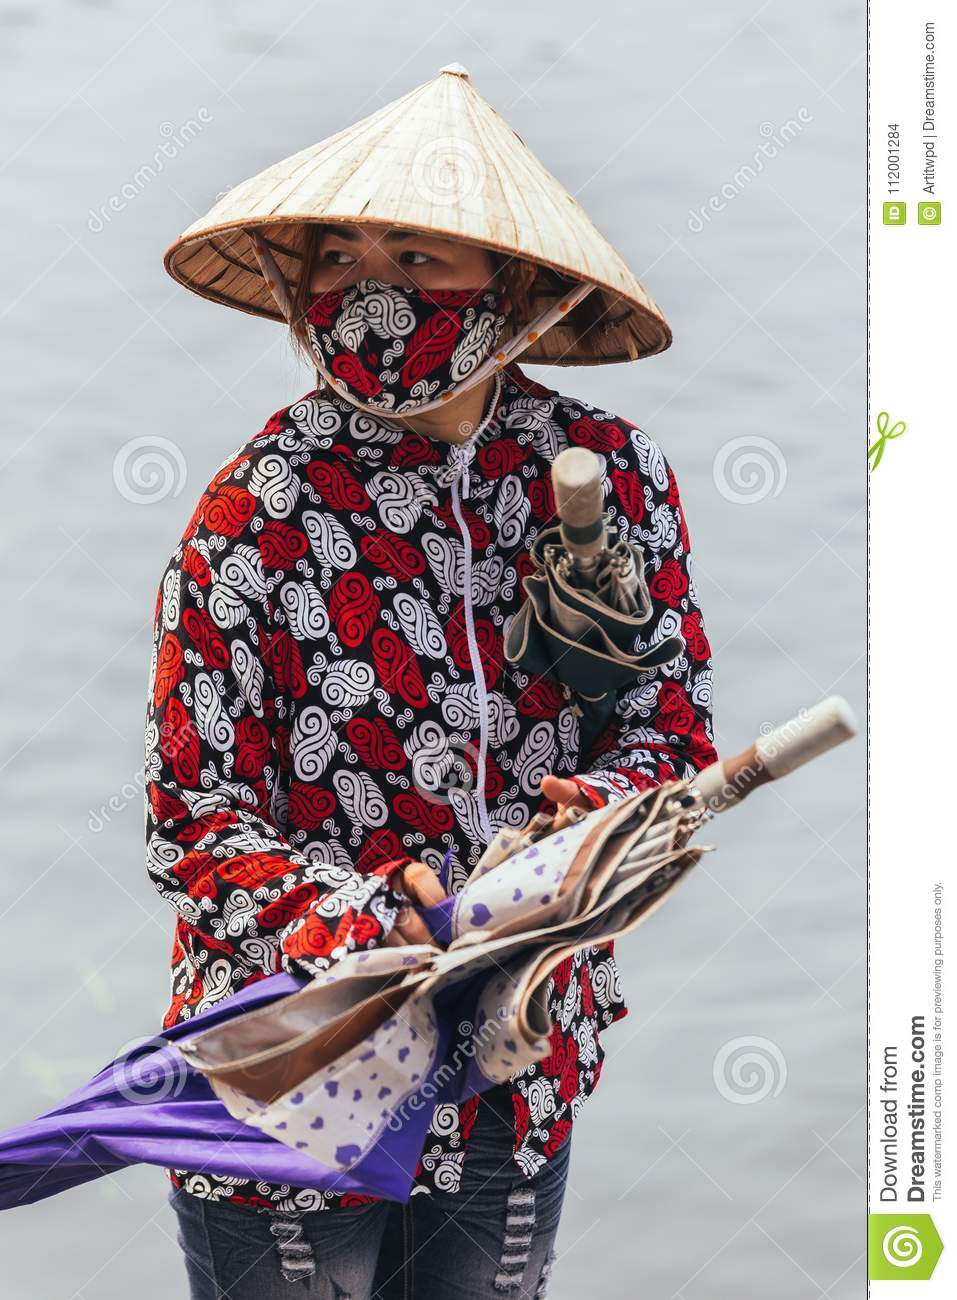 Rowing boat woman wearing red and white colors shirt, conical hat and mouth mask stand and carry umbrellas in Ninh Binh, Vietnam